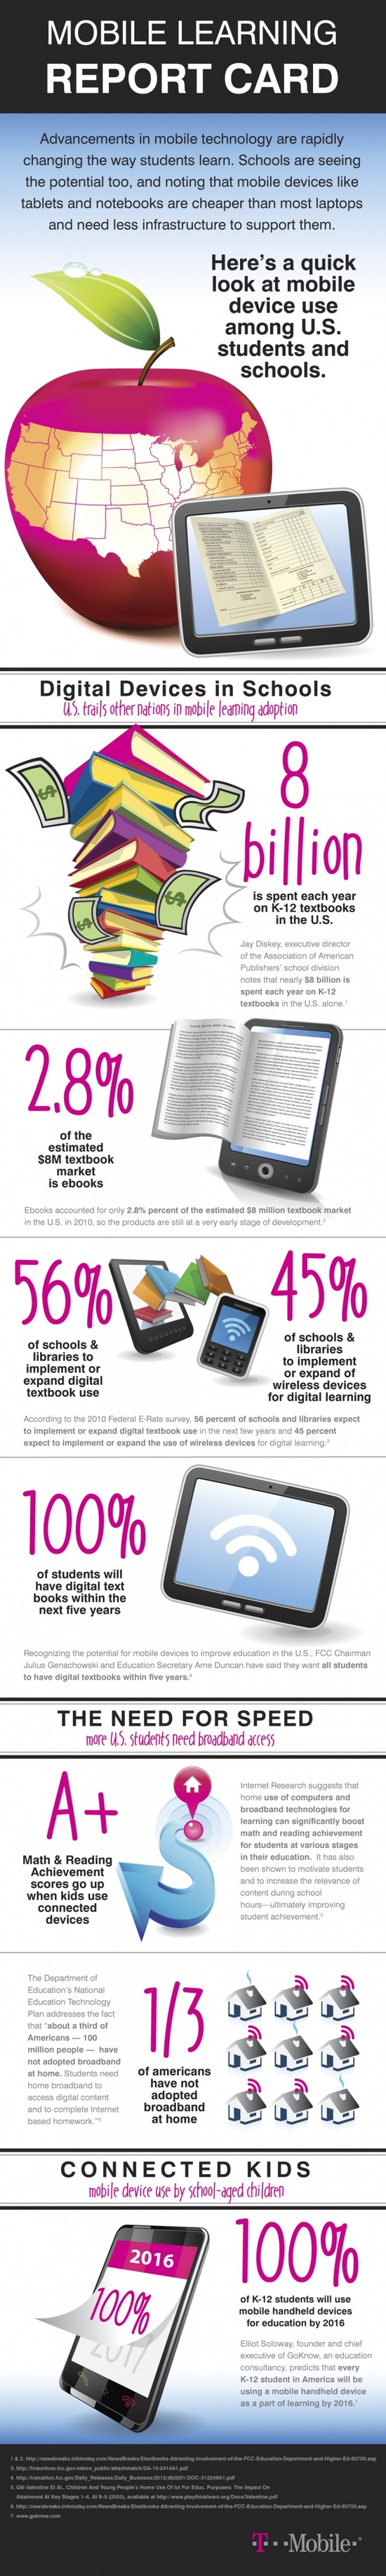 Current State and Future of Mobile Device Technology in the Classroom